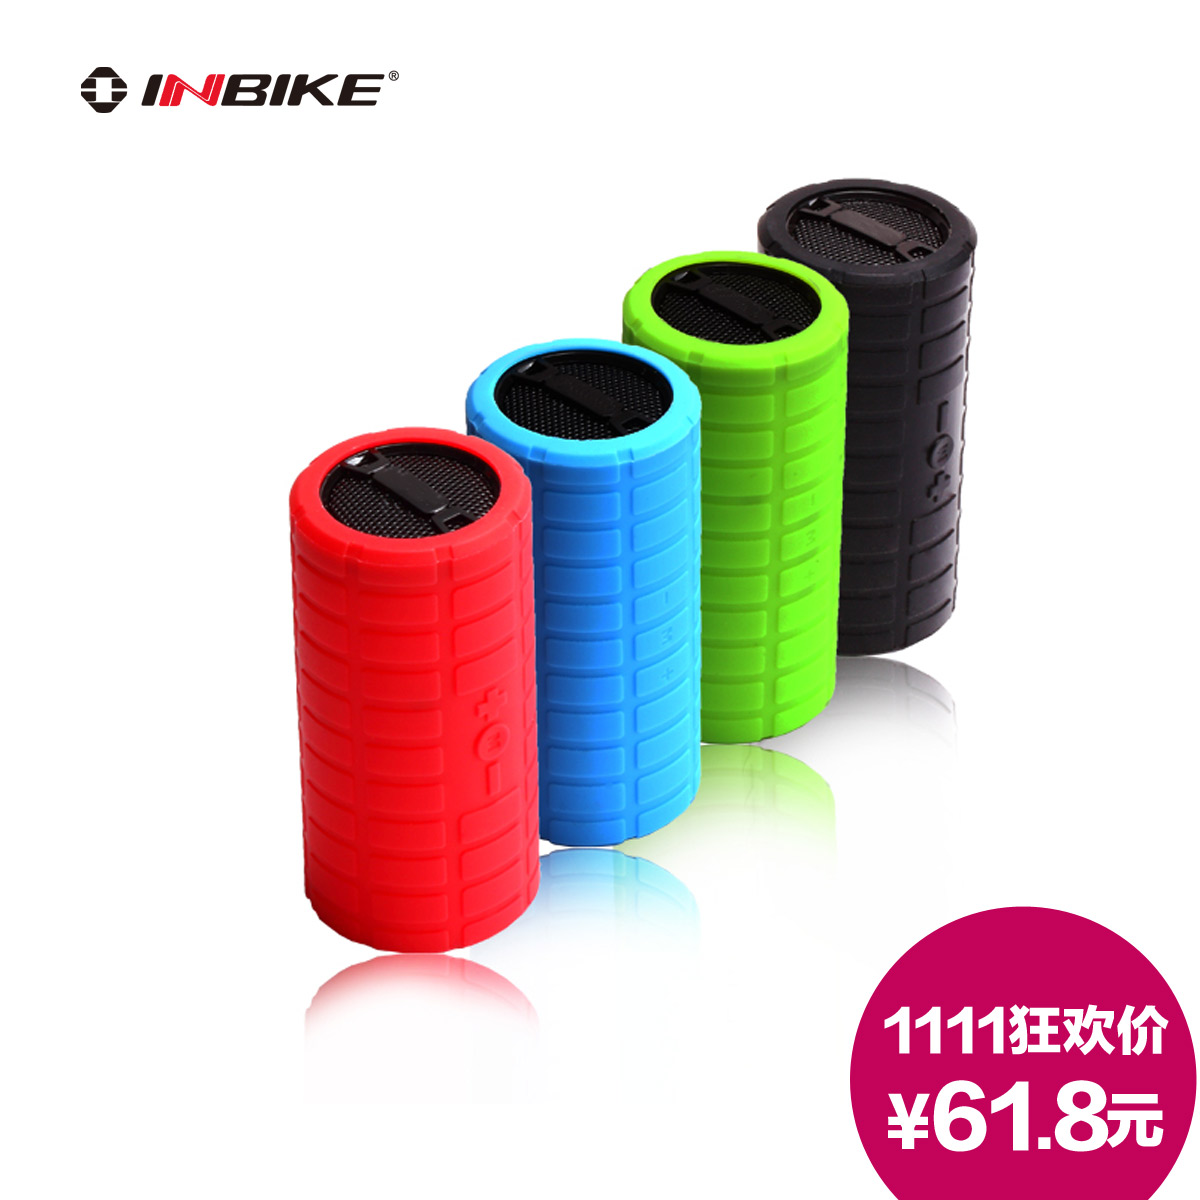 Inbike ride mountain bike bicycle audio is006 card small speaker subwoofer(China (Mainland))